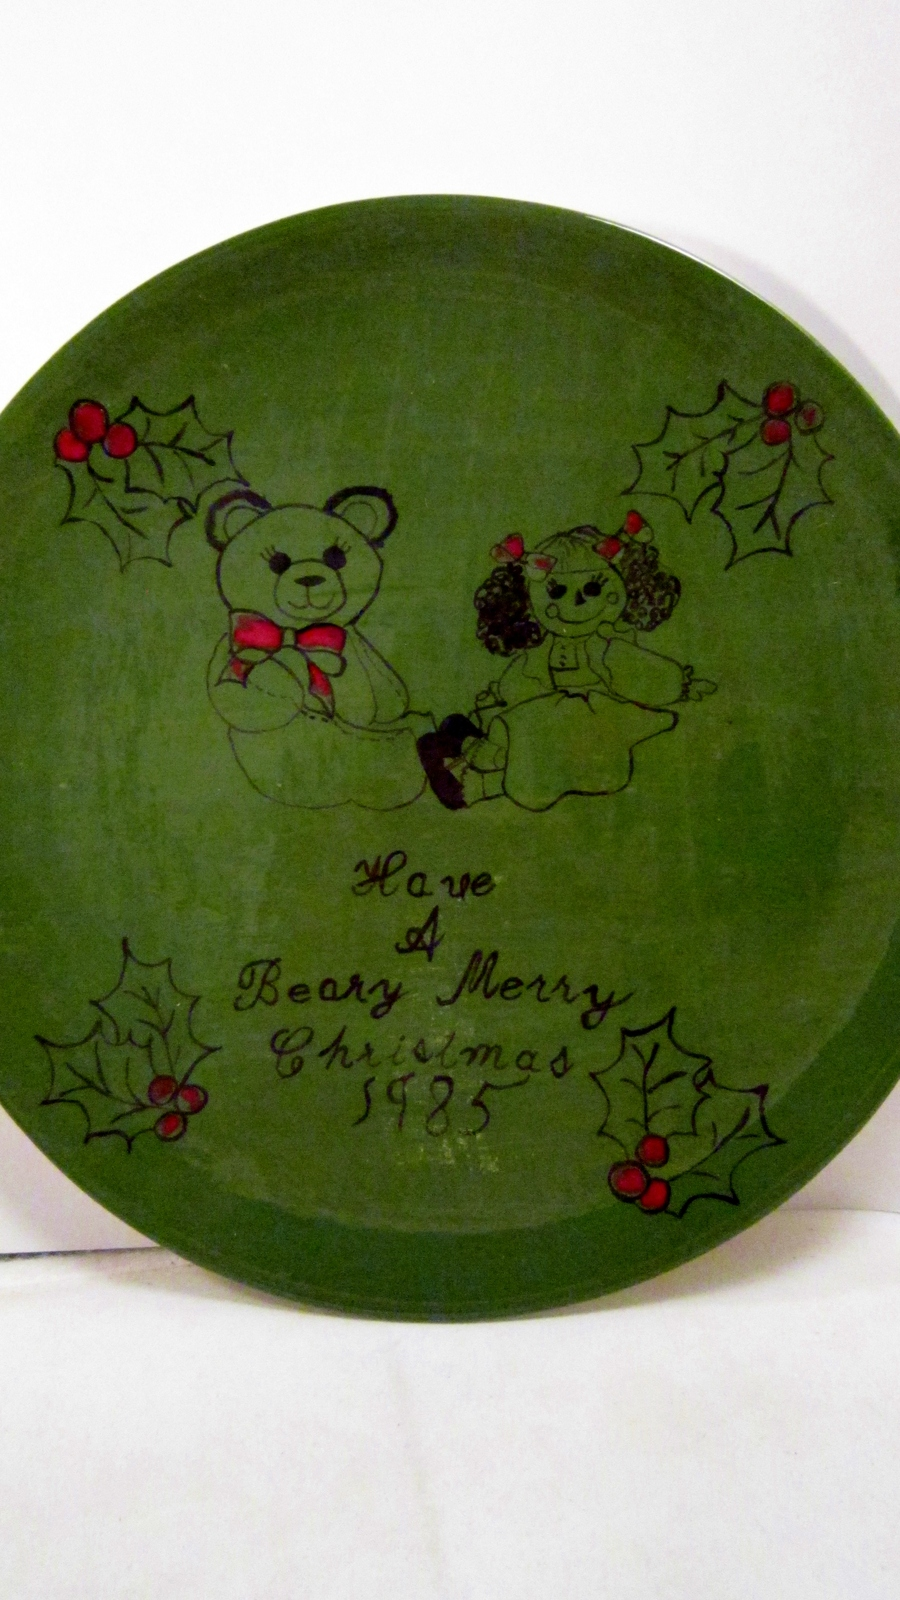 Have a beary merry christmas 1985 plate 01